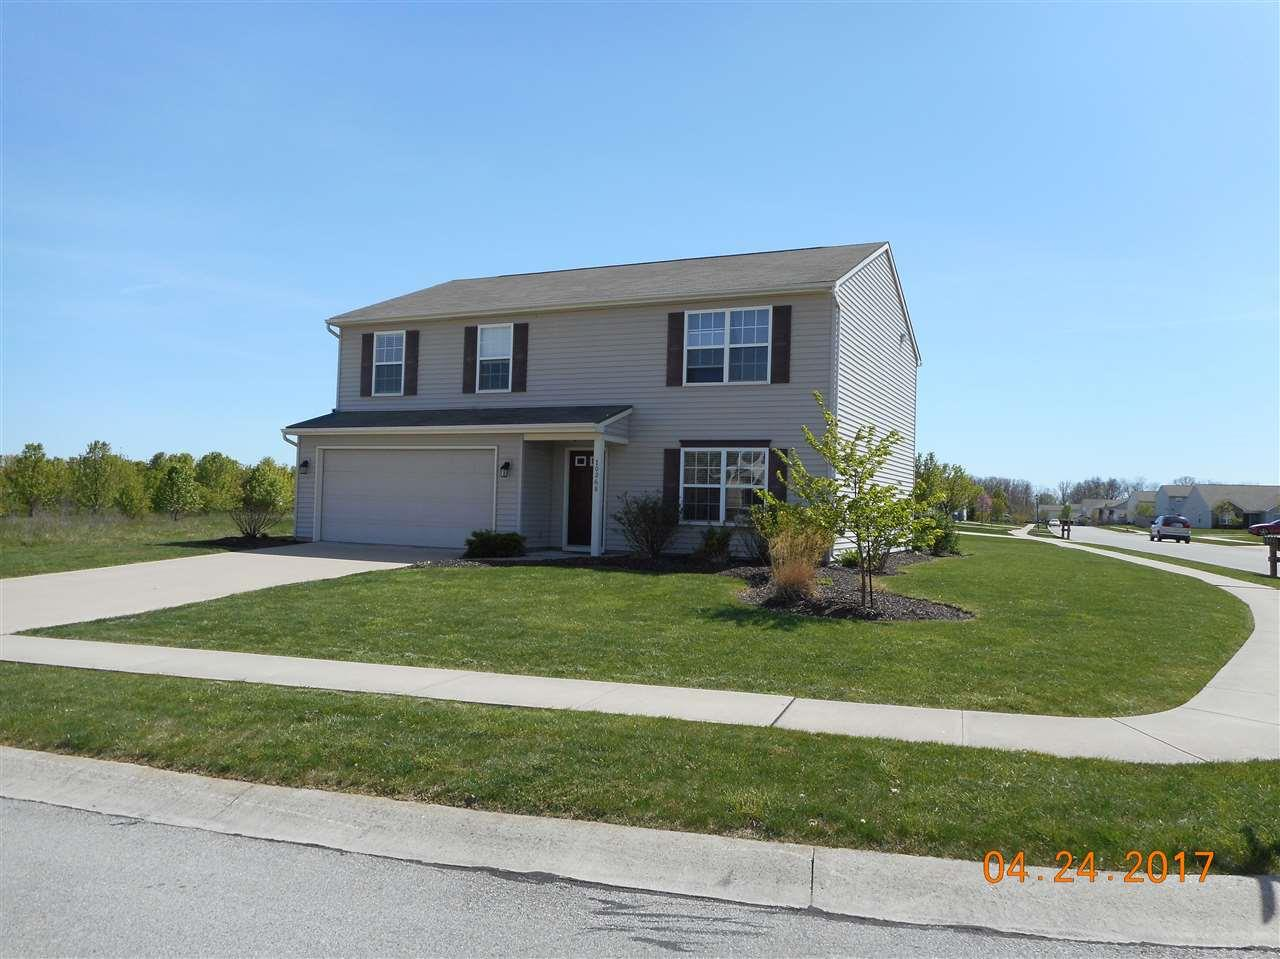 10268 Erwin, New Haven, IN 46774